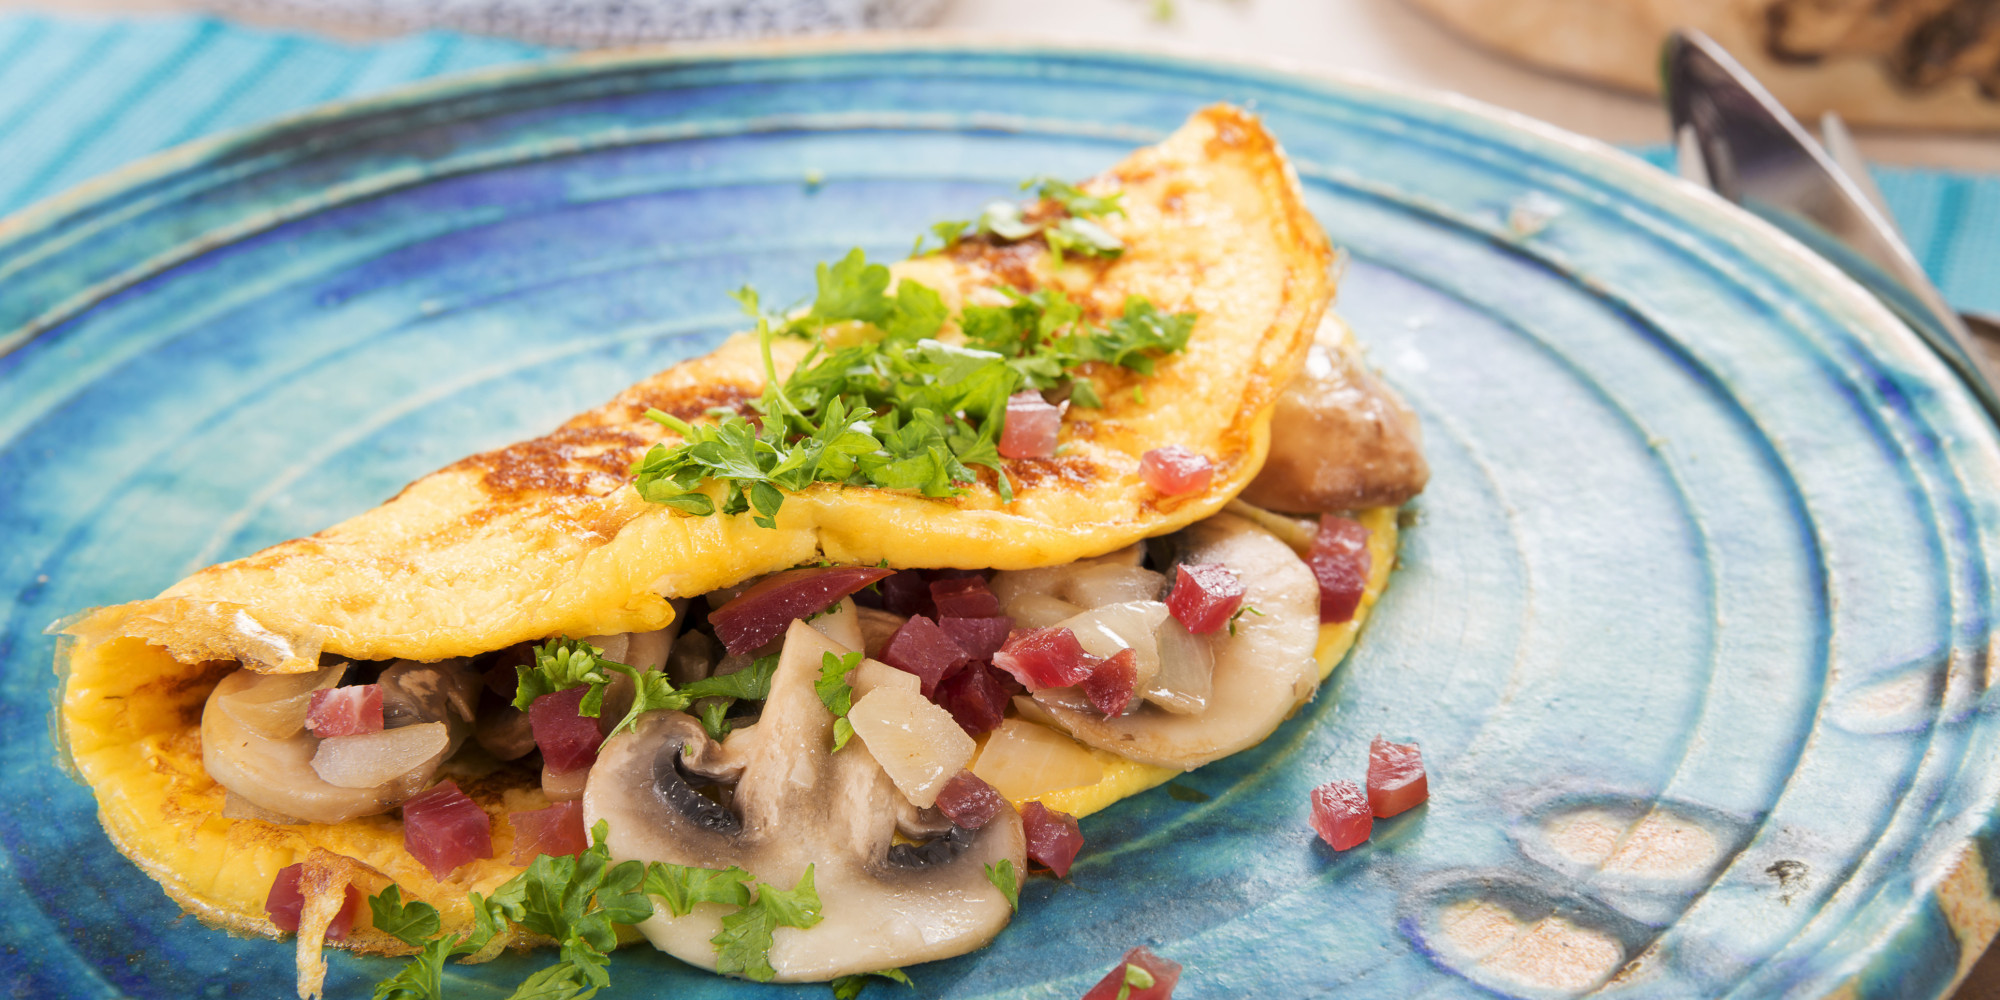 Healthy Protein Breakfast  13 Healthy Breakfast Ideas Packed With Protein And Low In